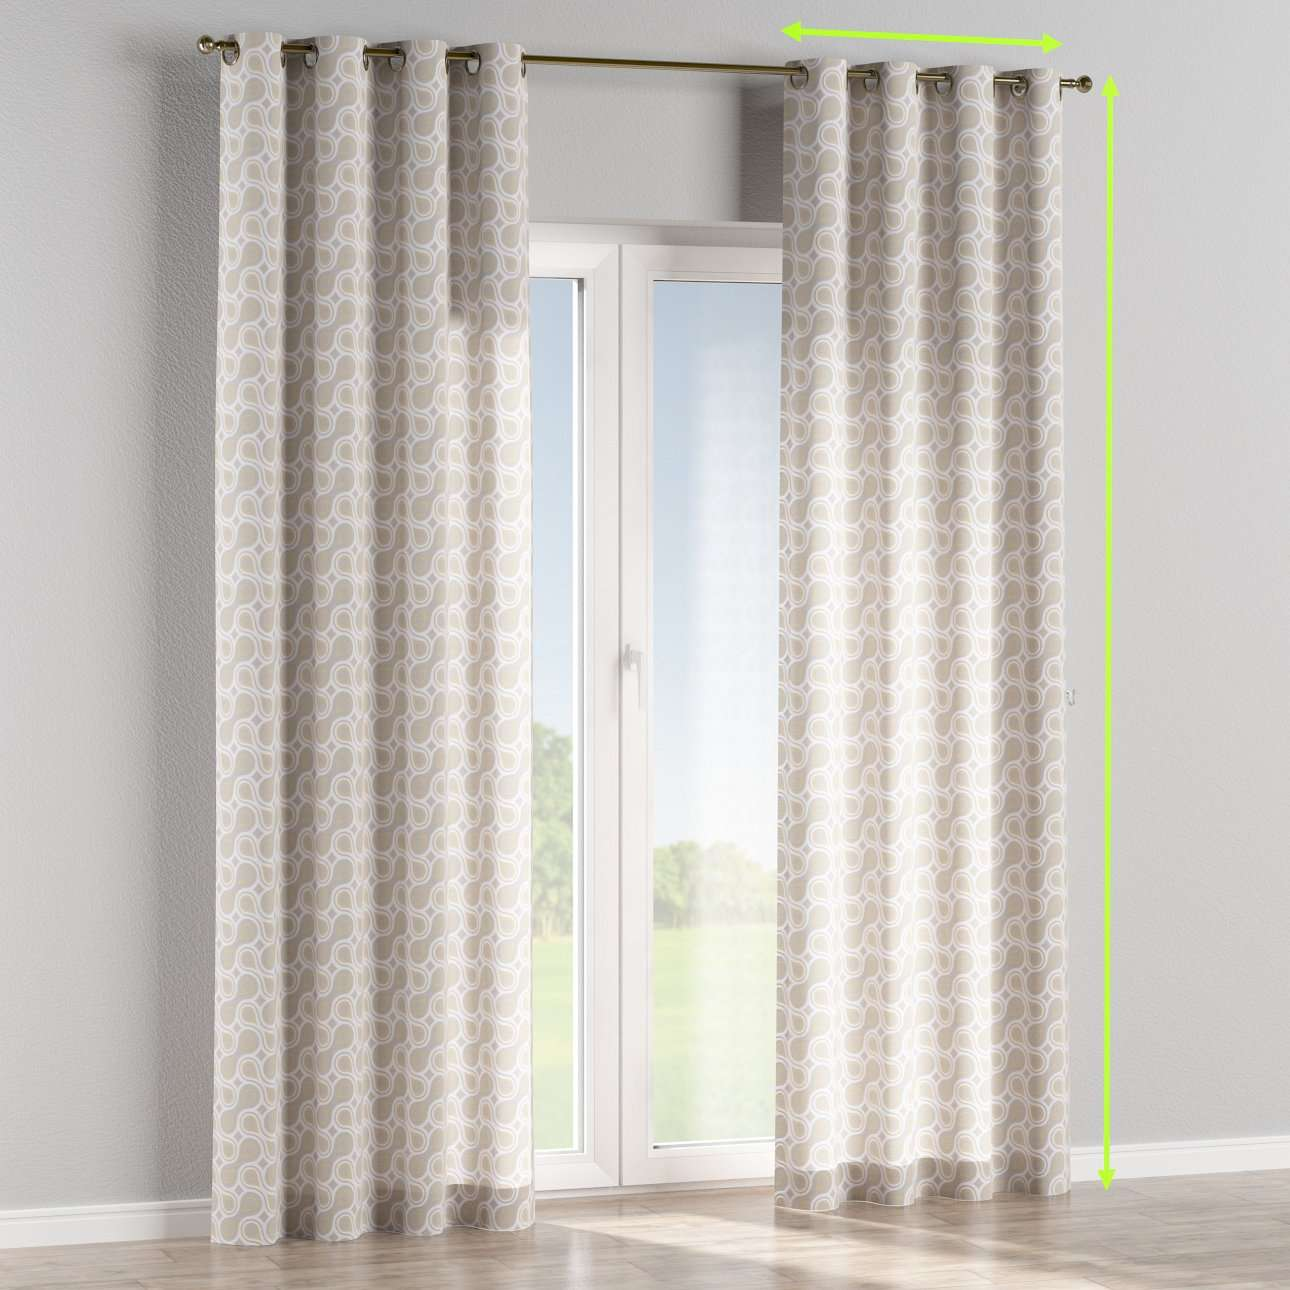 Eyelet curtains in collection Flowers, fabric: 311-11